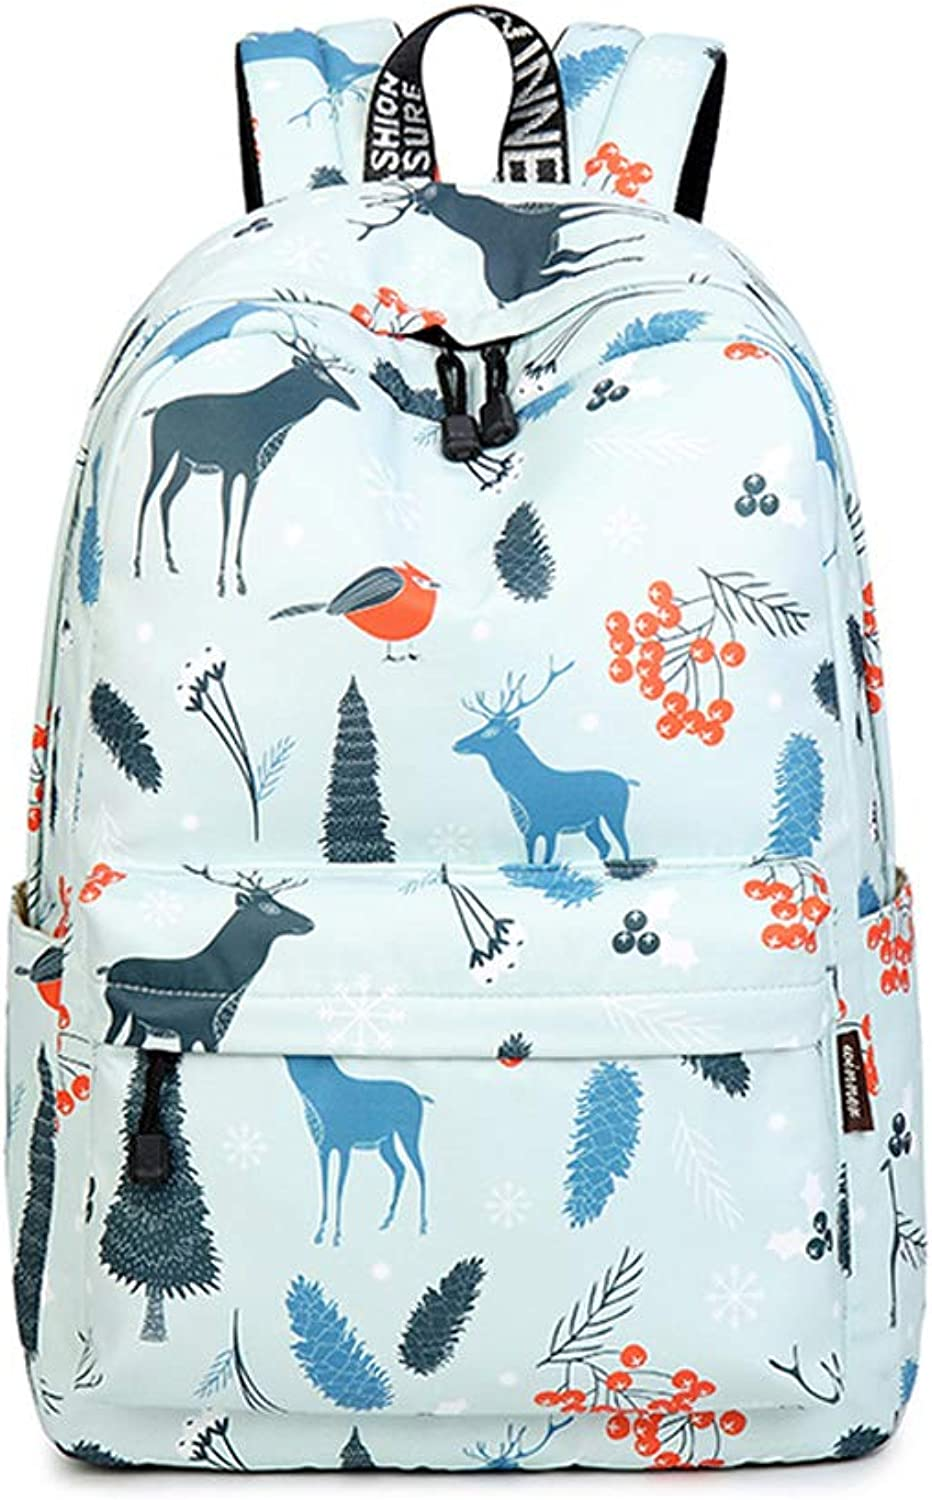 HLJ Creative Simple Outdoor Travel Backpack Personality Fashion Women Backpack Casual Backpack